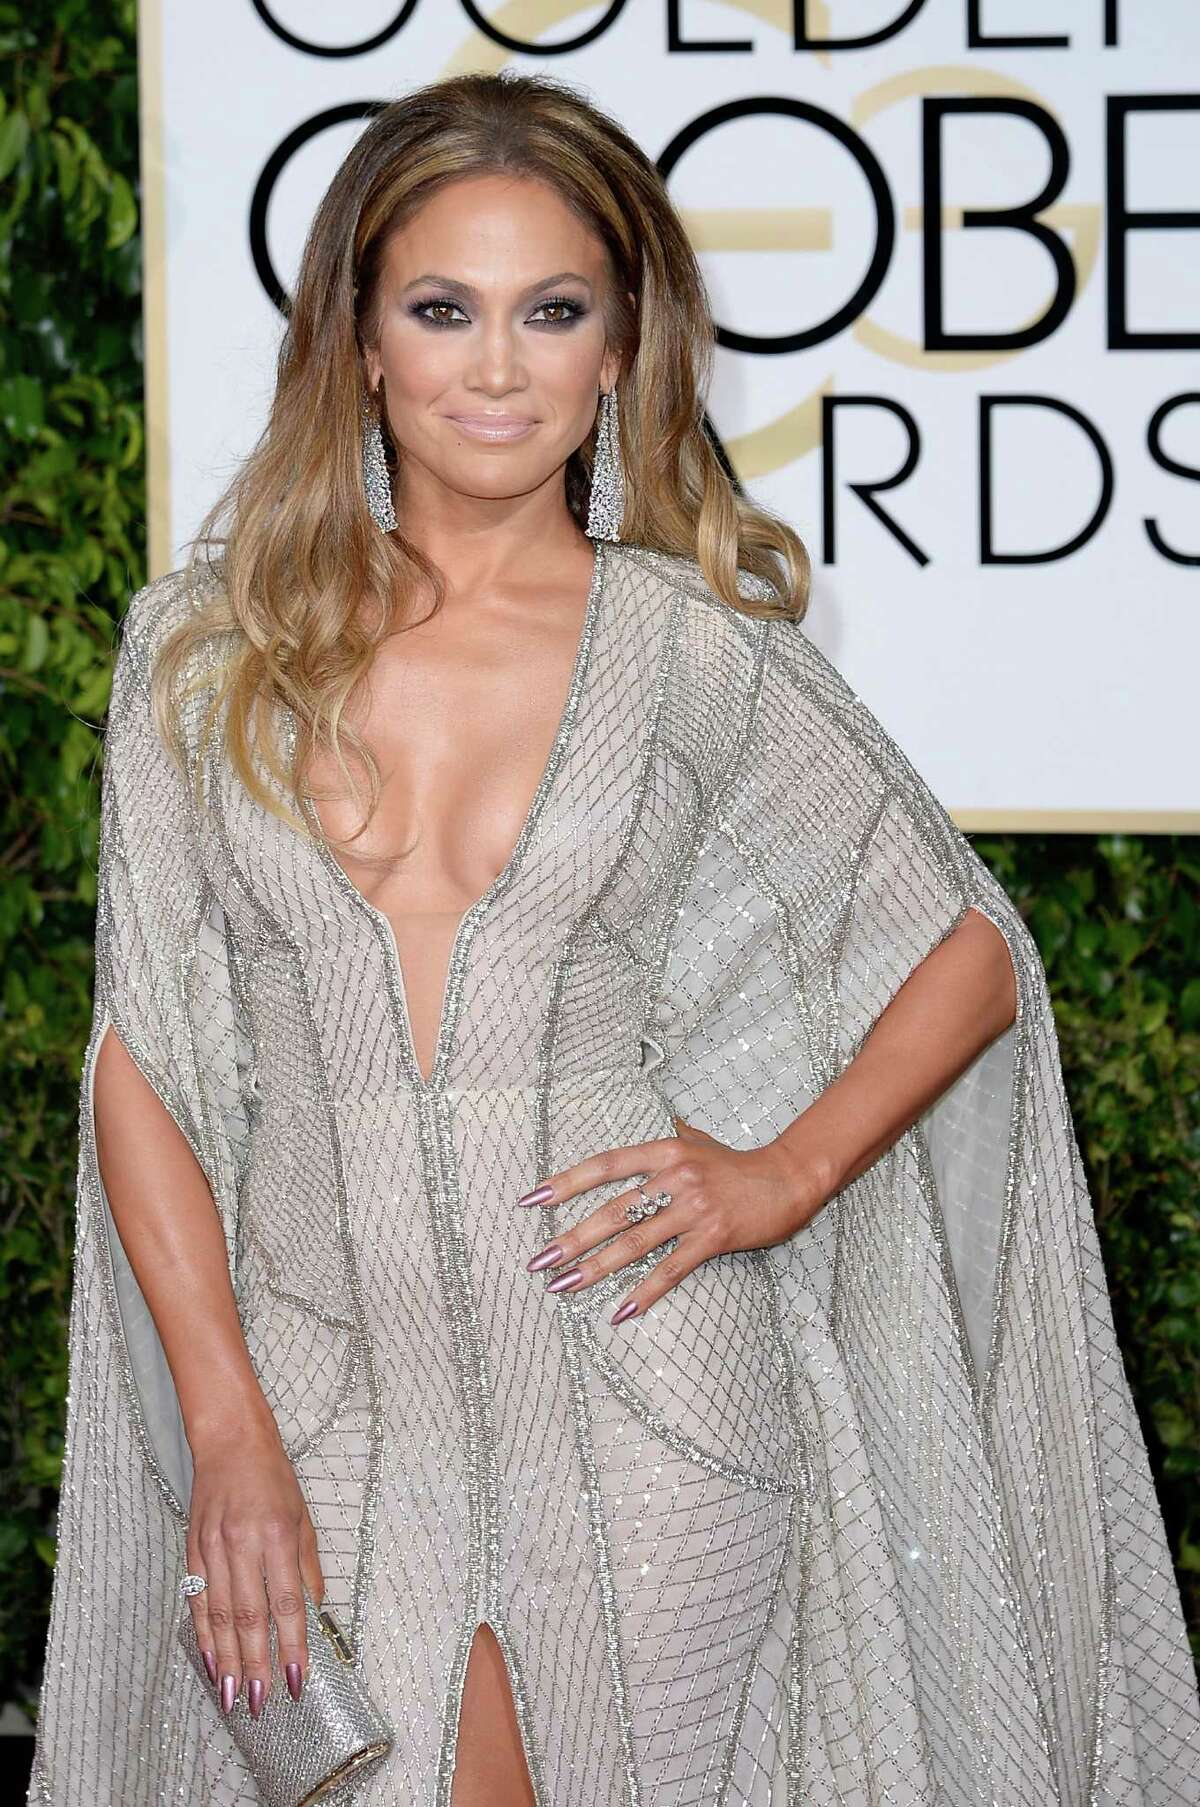 BEVERLY HILLS, CA - JANUARY 11: 72nd ANNUAL GOLDEN GLOBE AWARDS -- Pictured: Actress/singer Jennifer Lopez arrives to the 72nd Annual Golden Globe Awards held at the Beverly Hilton Hotel on January 11, 2015.